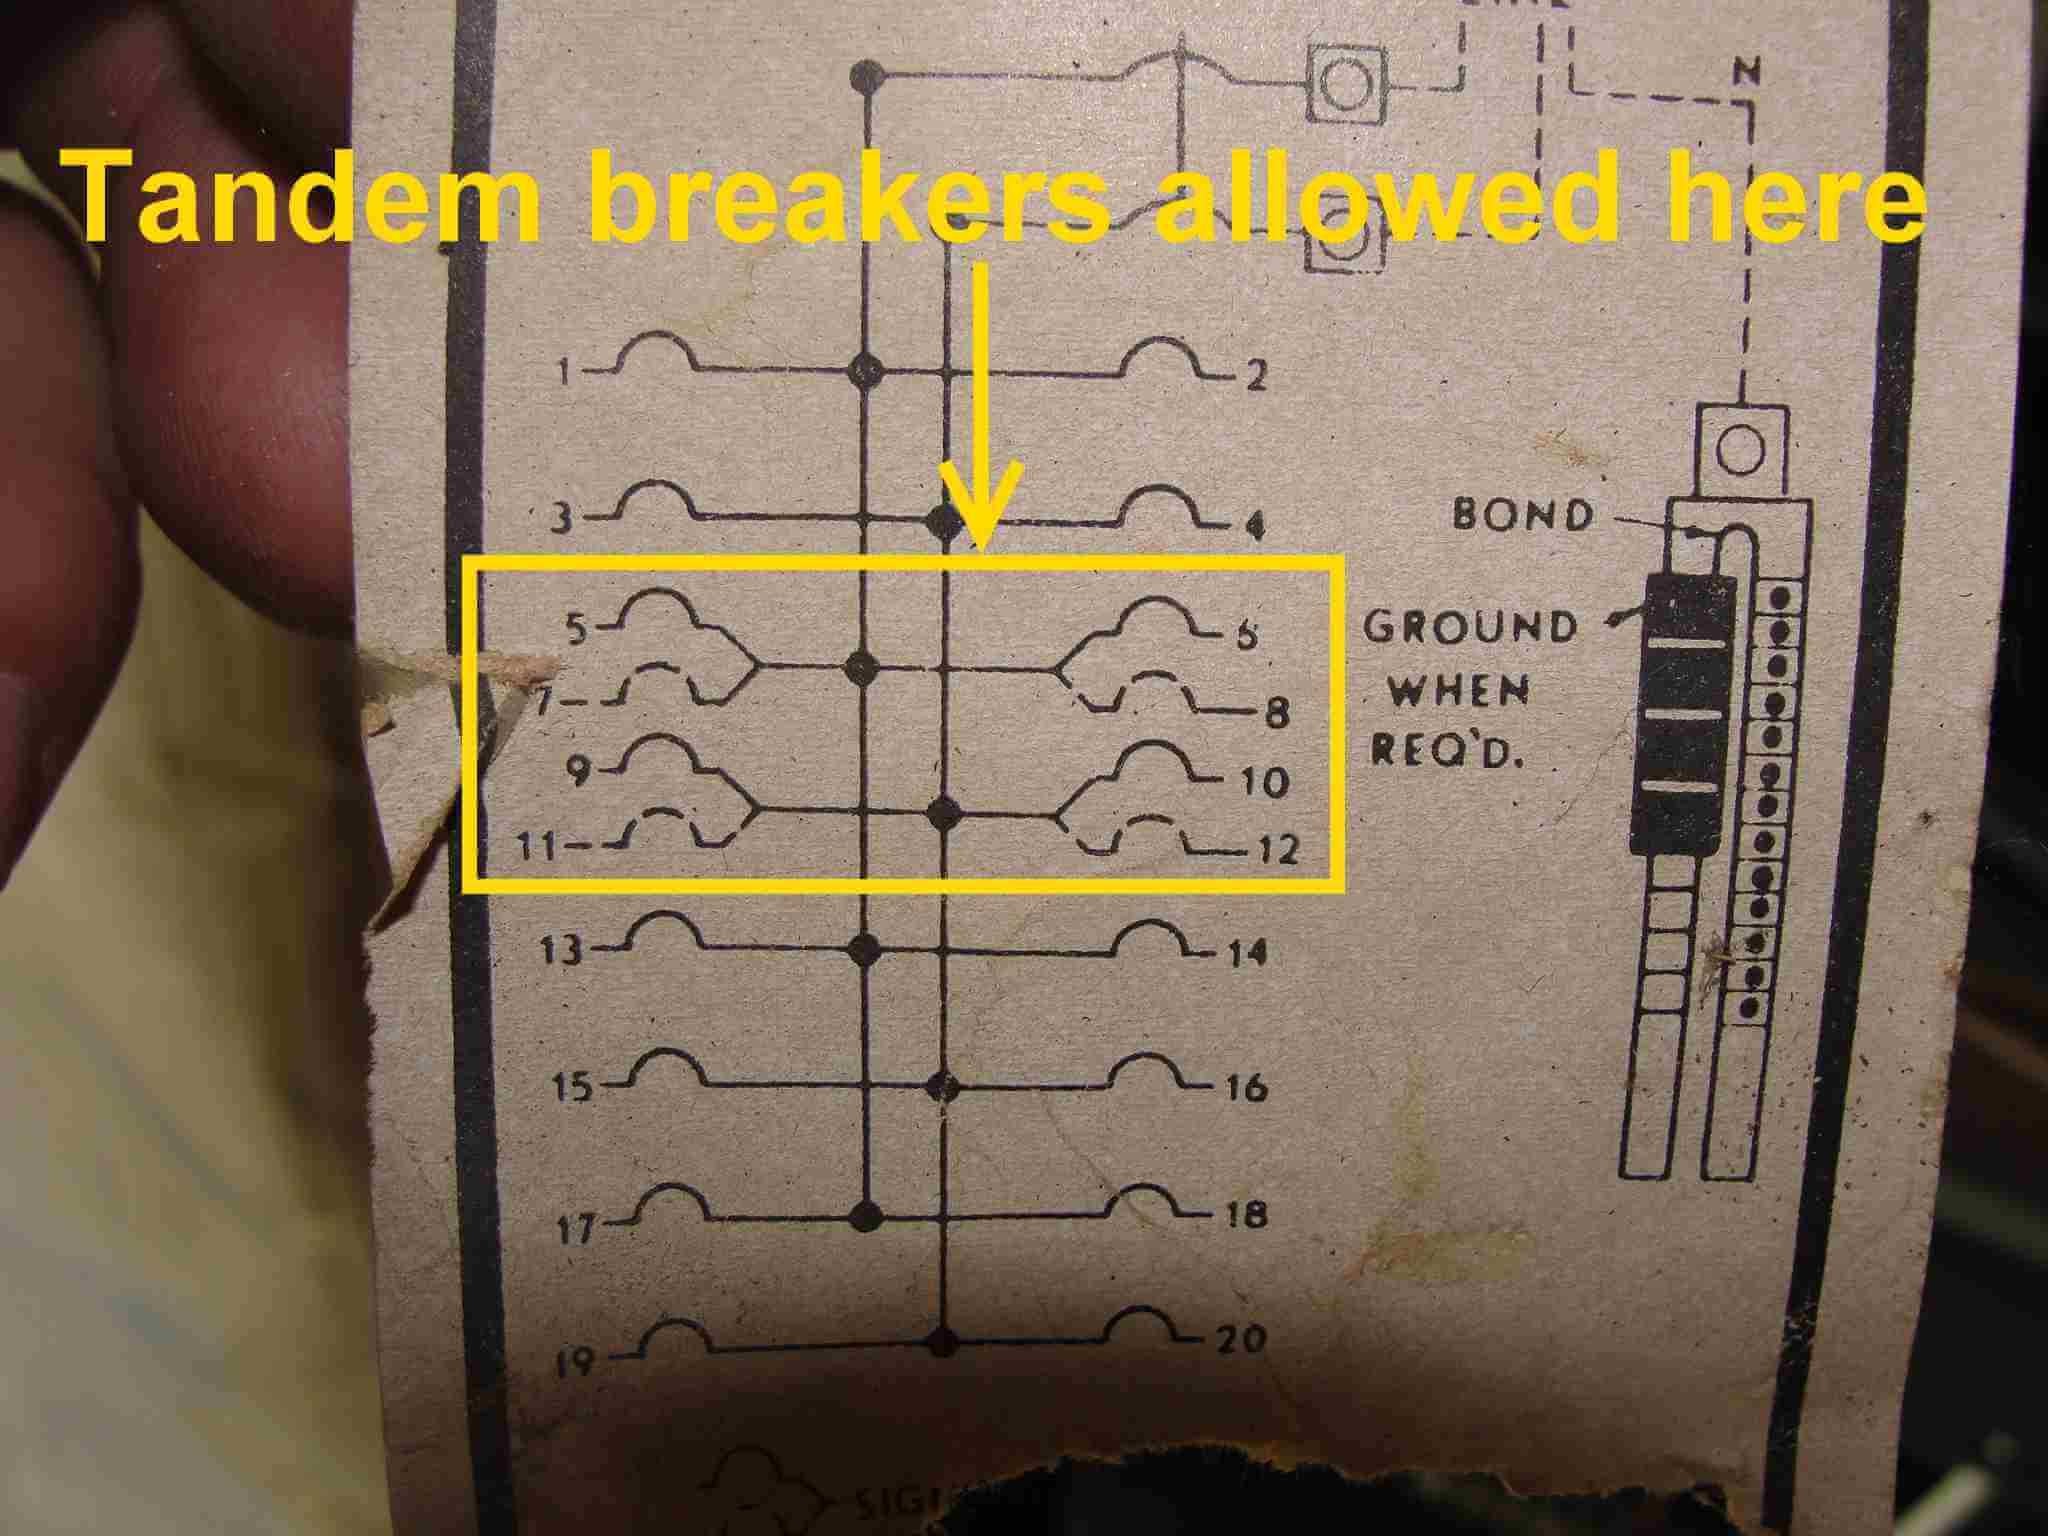 3 Pole Wiring Diagram Auto Electrical Wire Fuel Harness Pump Wrangler 92jjeep How To Know When Tandem Circuit Breakers Can Be Used Aka